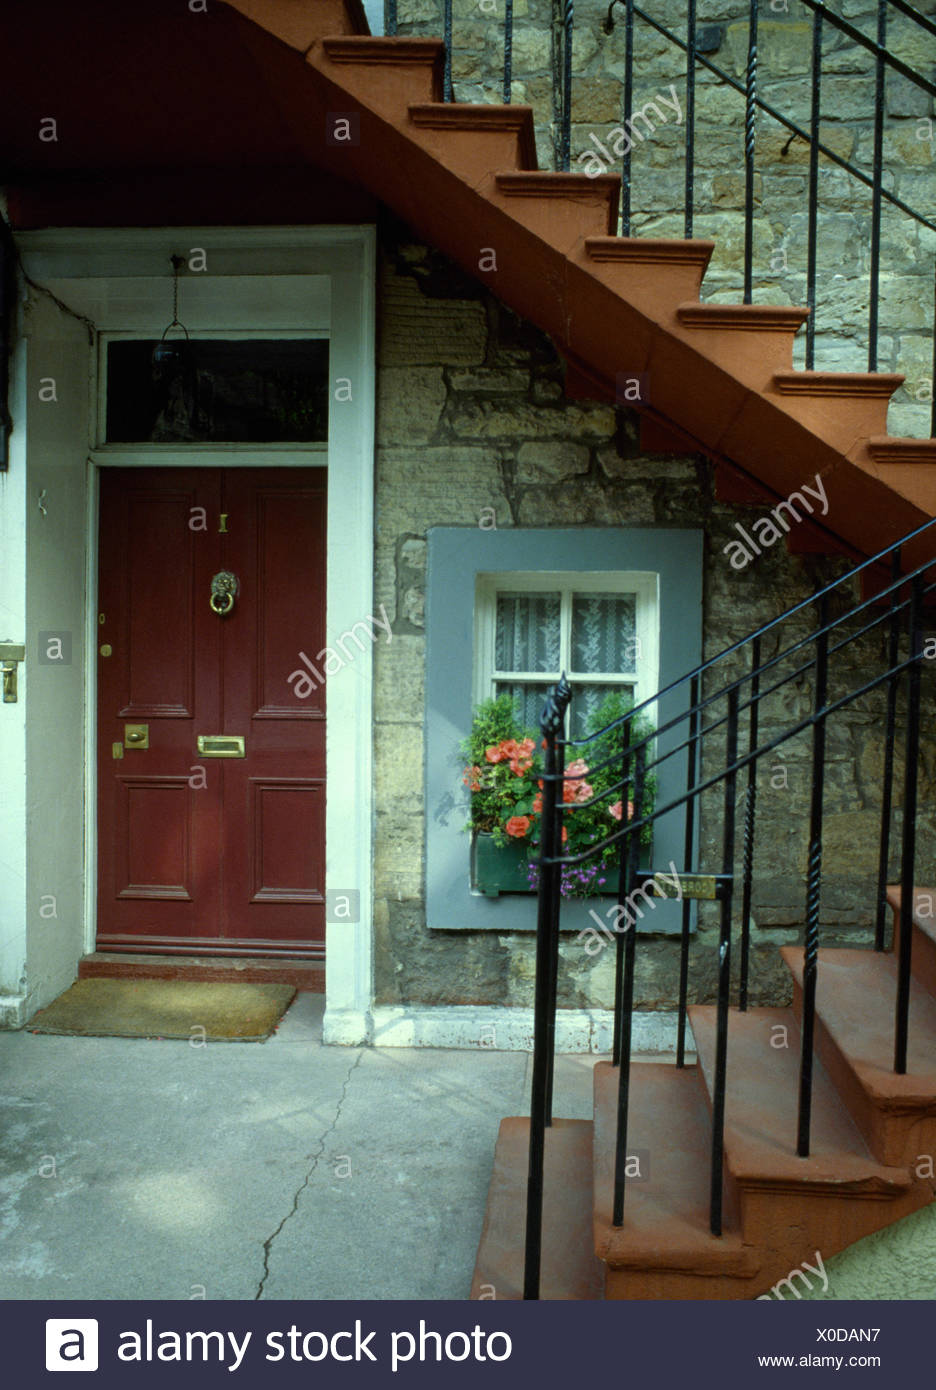 Exterior Of Basement Apartment With A Brown Front Door Below Steps